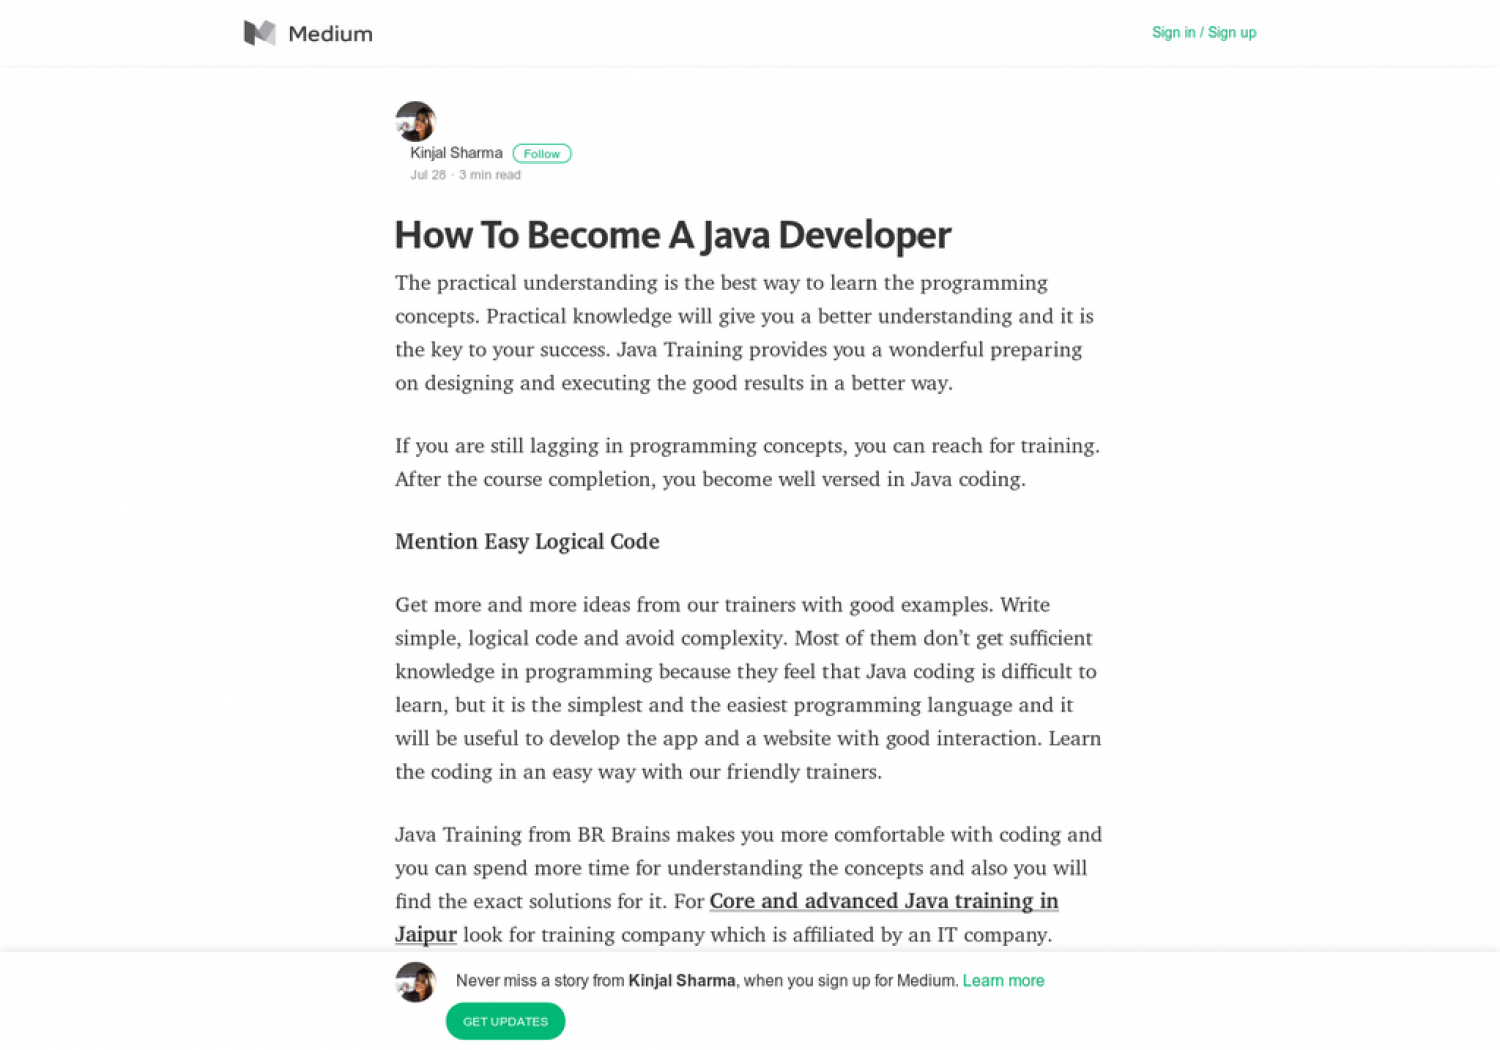 How To Become A Java Developer Infographic